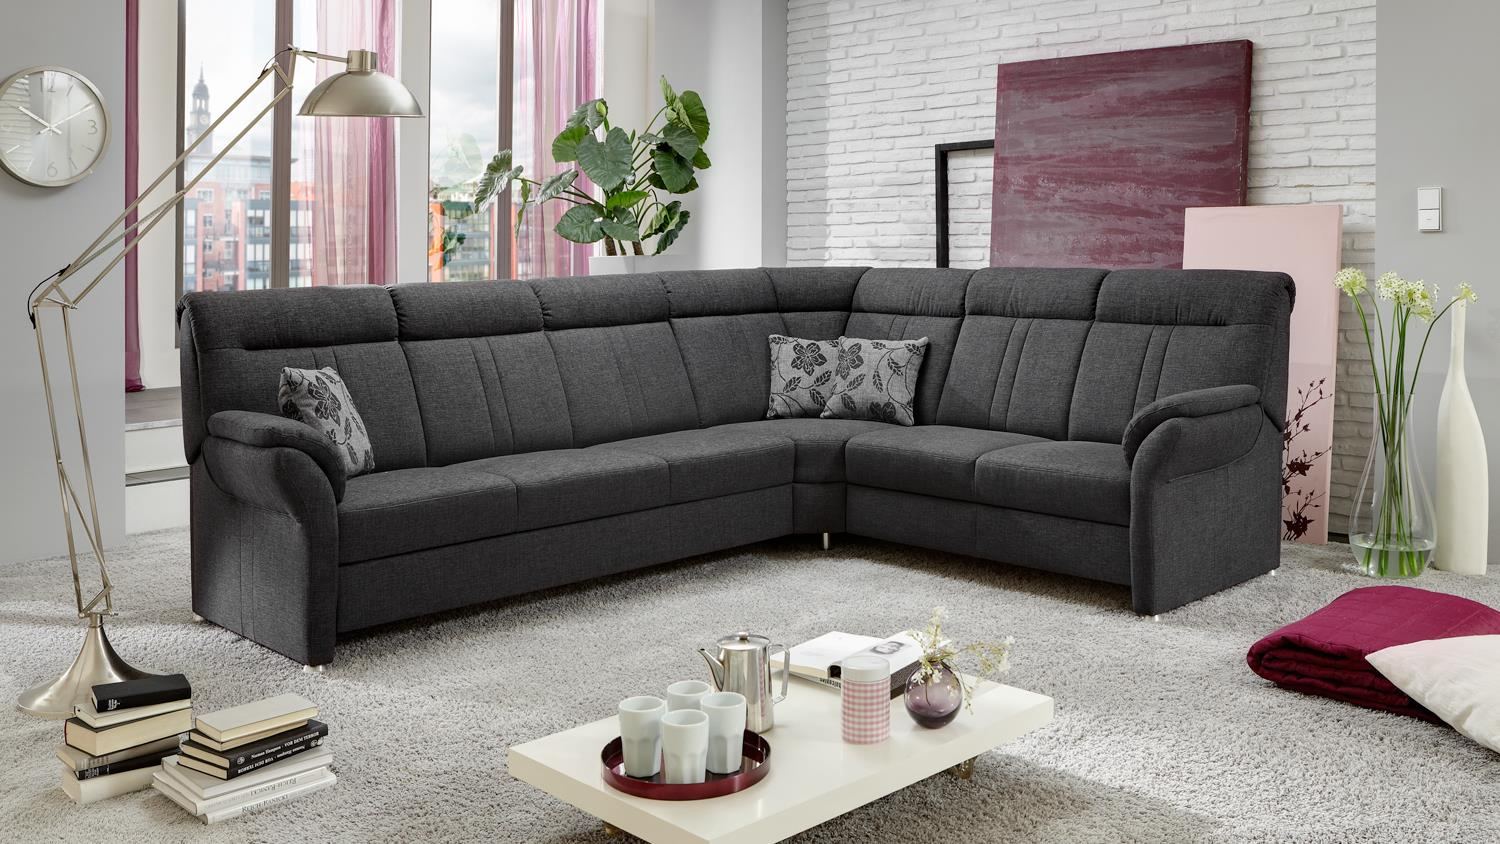 ecksofa marseille bezug stoff anthrazit f e metall mit nosagfederung. Black Bedroom Furniture Sets. Home Design Ideas